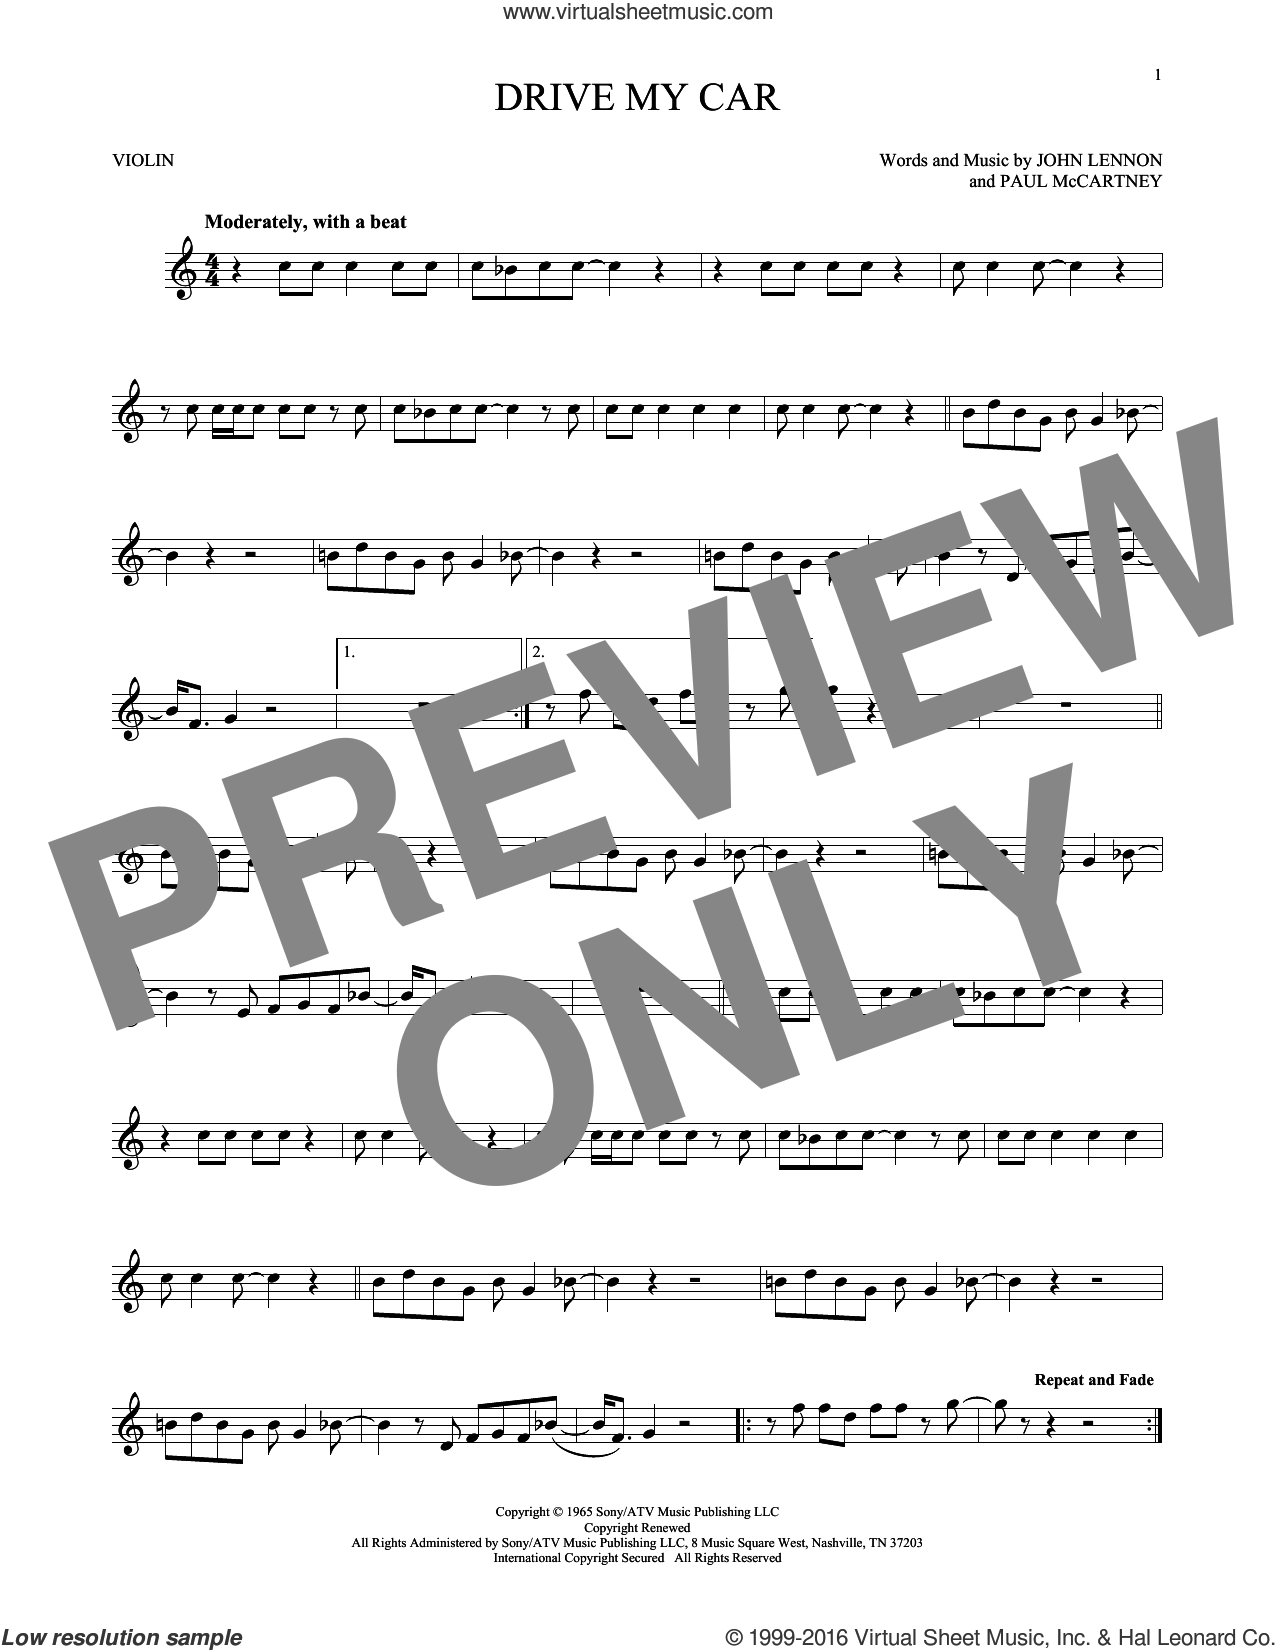 Drive My Car sheet music for violin solo by The Beatles, John Lennon and Paul McCartney, intermediate skill level